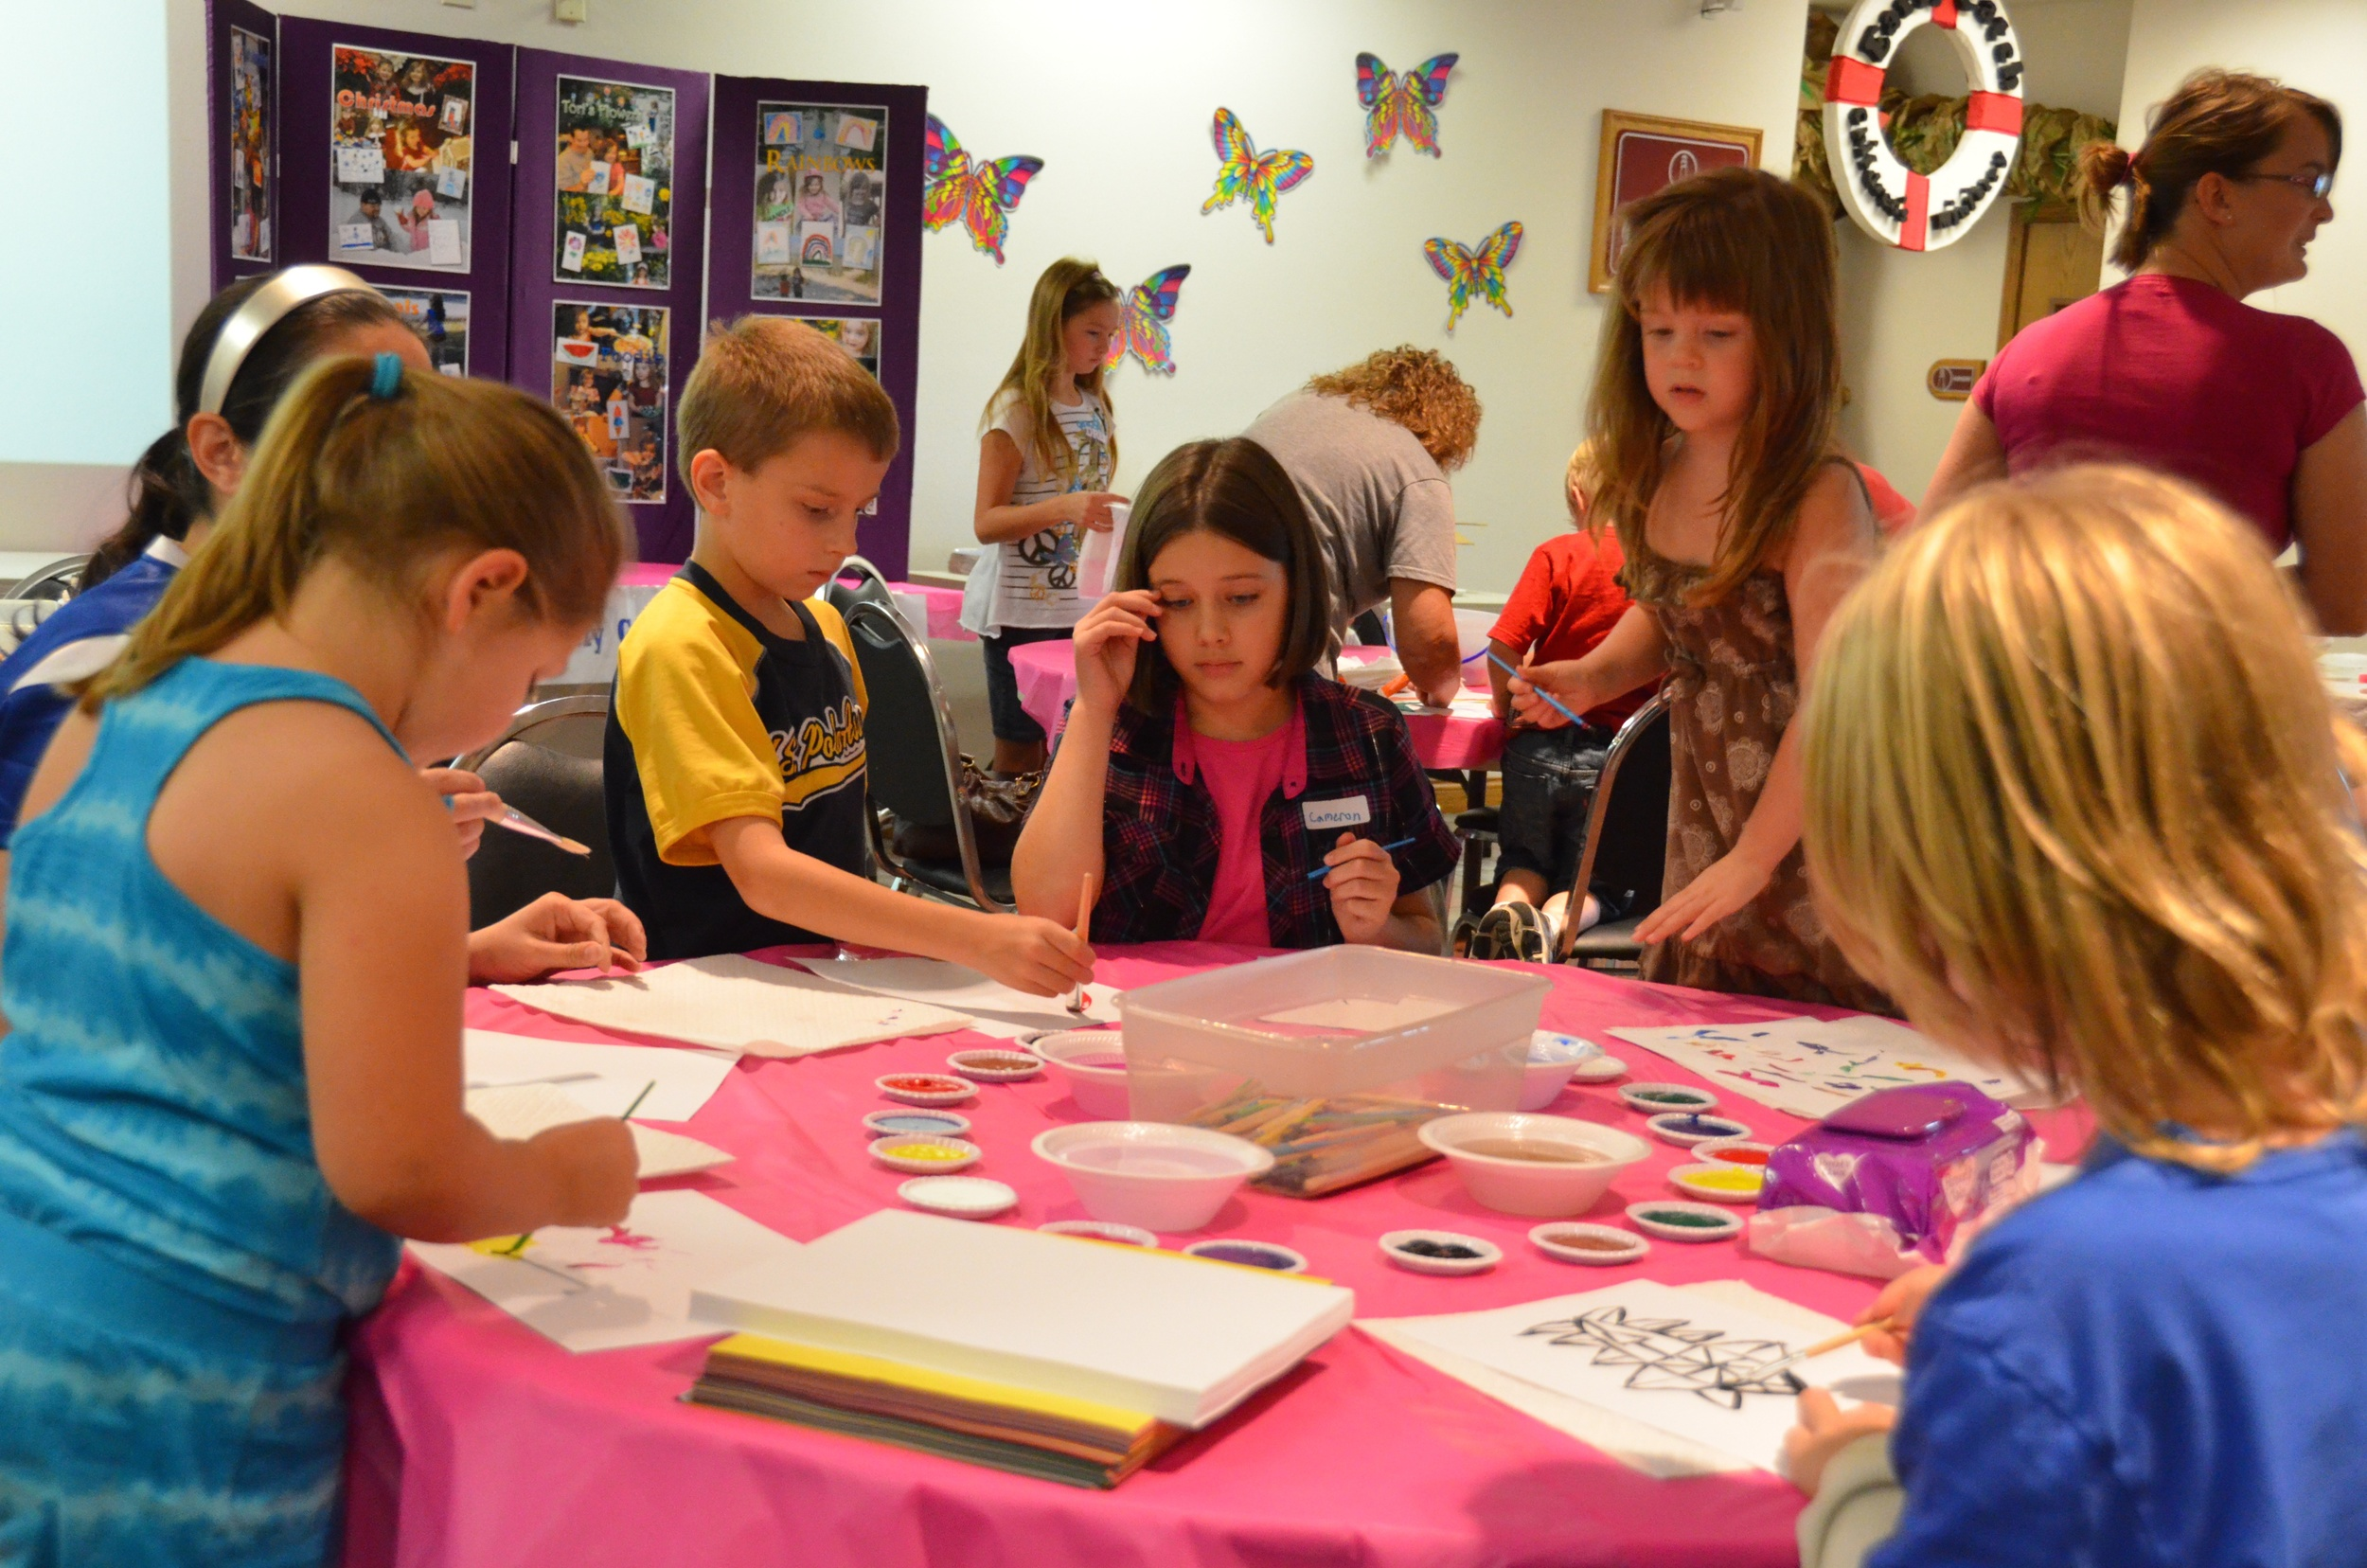 KIds ARt Church 9 12 2011   95188.jpg